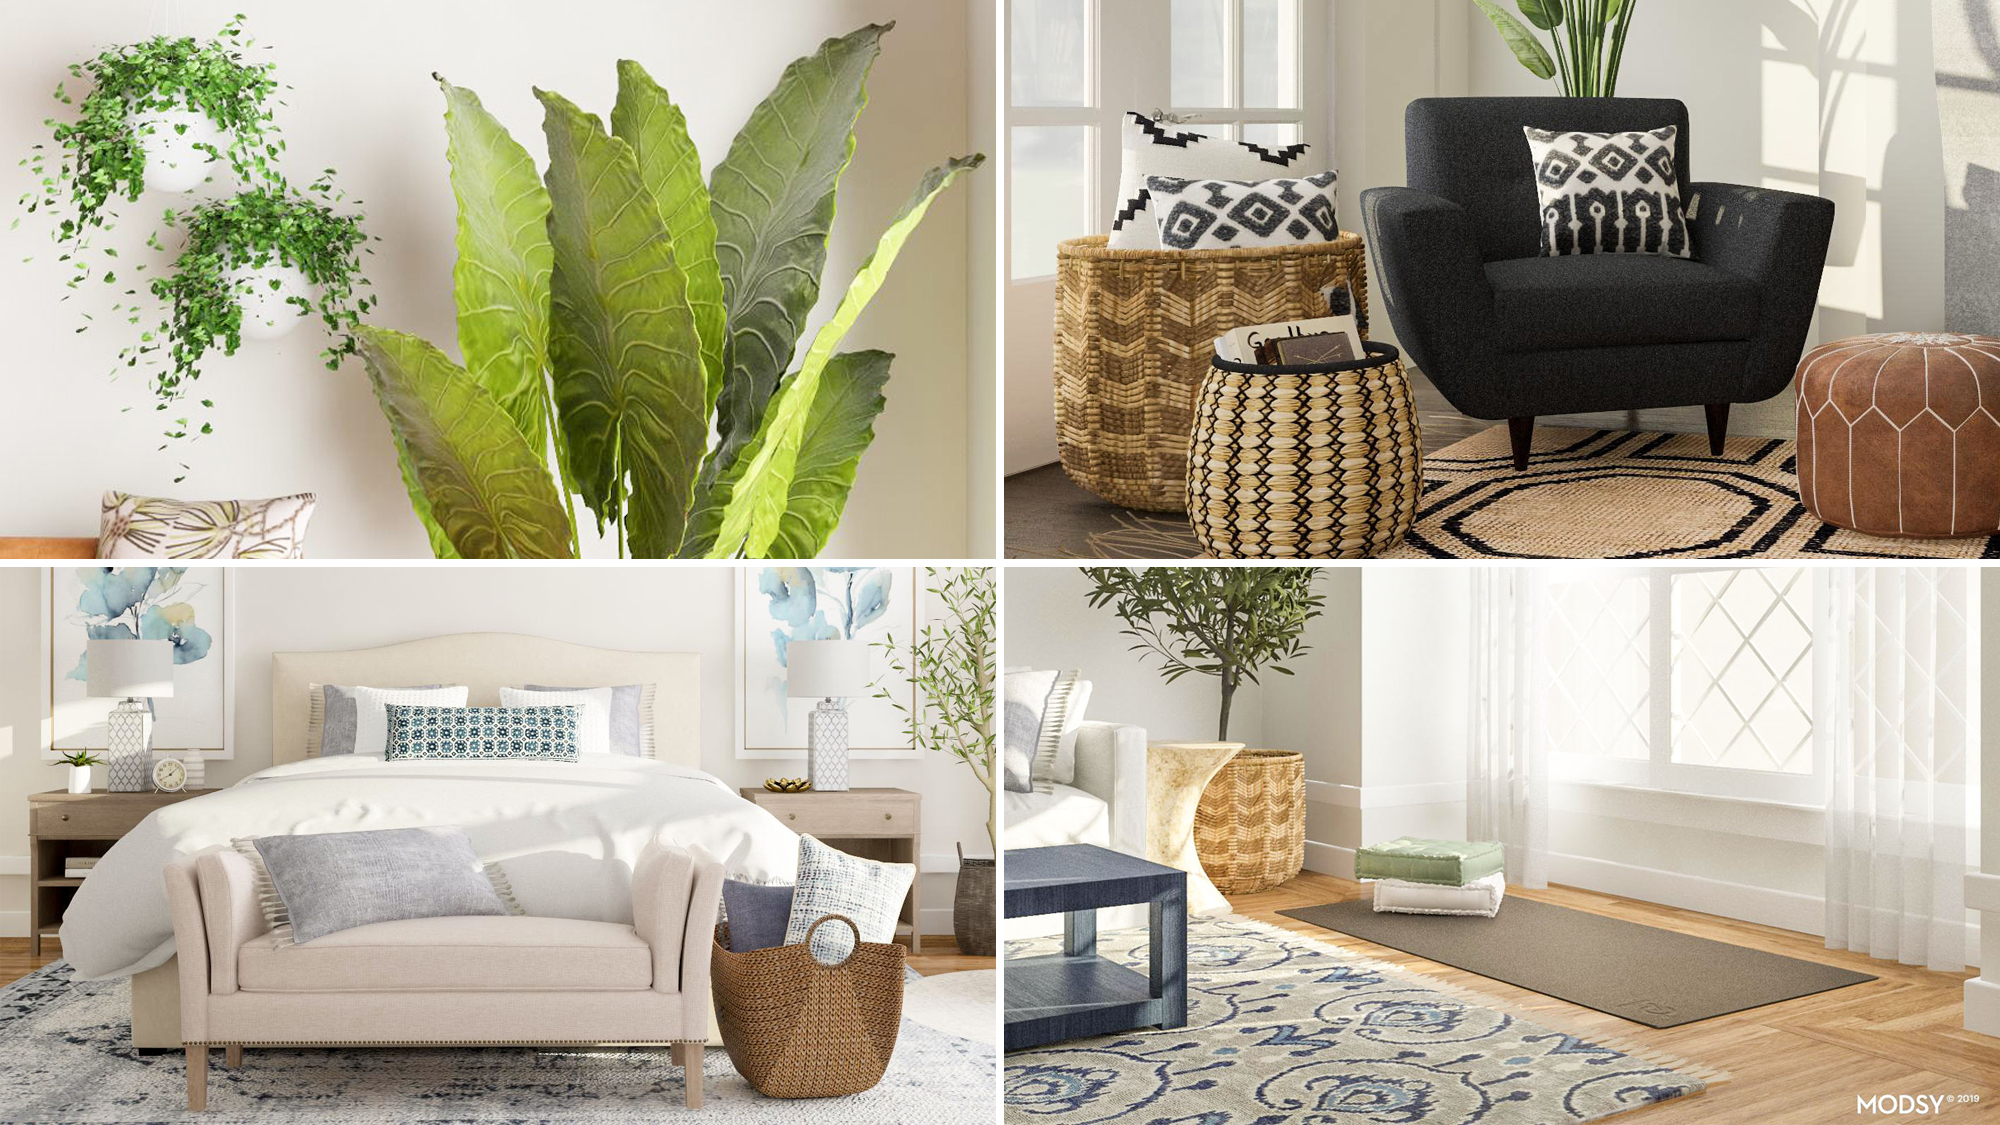 Feeling Zen? Interior Design Experts Give Tips to Create a Relaxing Home